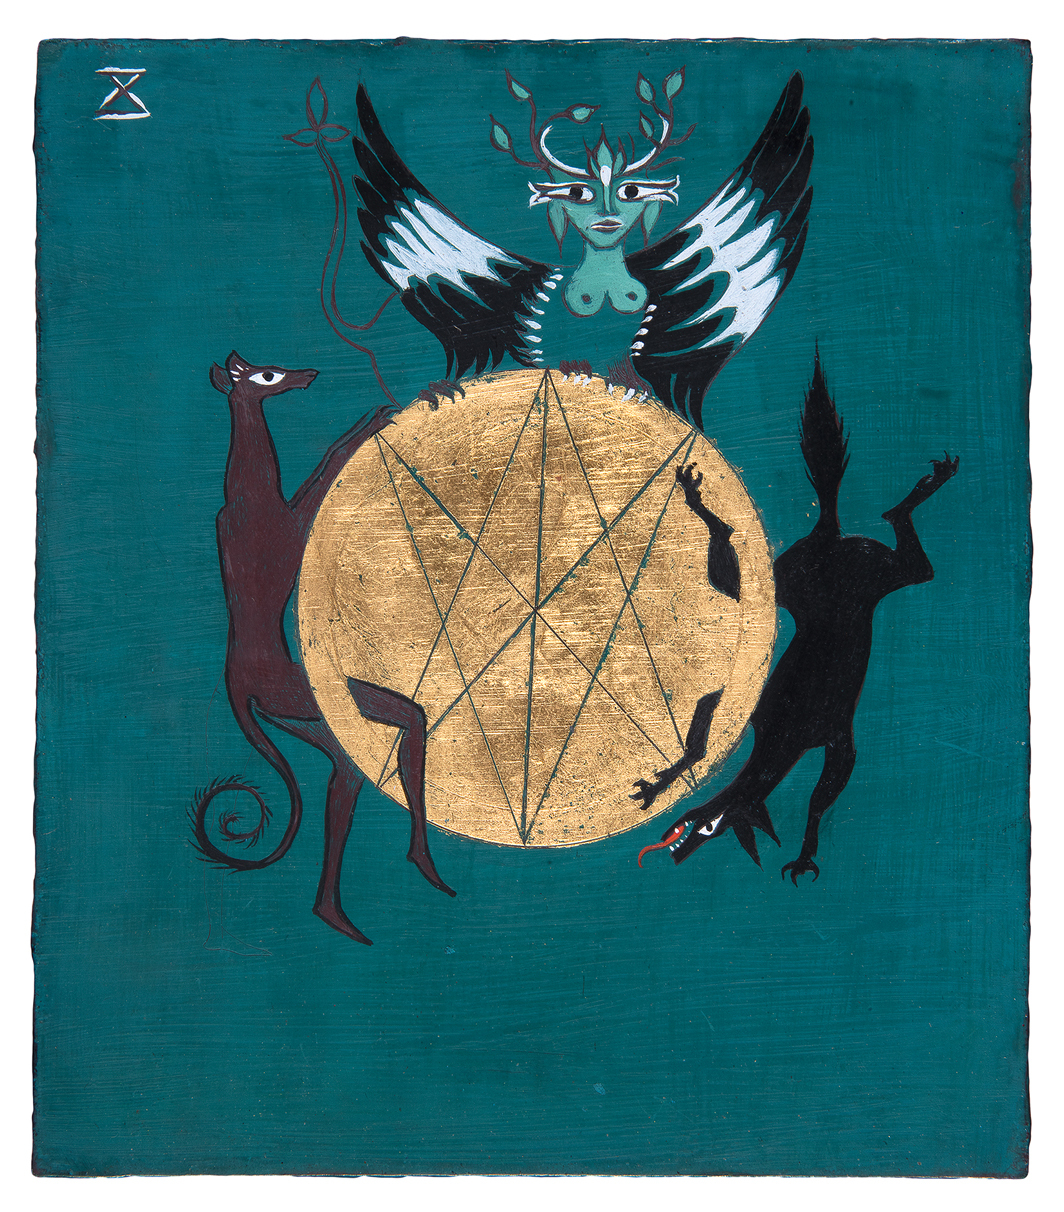 Leonora Carrington, Wheel of Fortune, ca. 1955, oil and gold leaf on board, 6 1⁄4 × 5 1⁄2